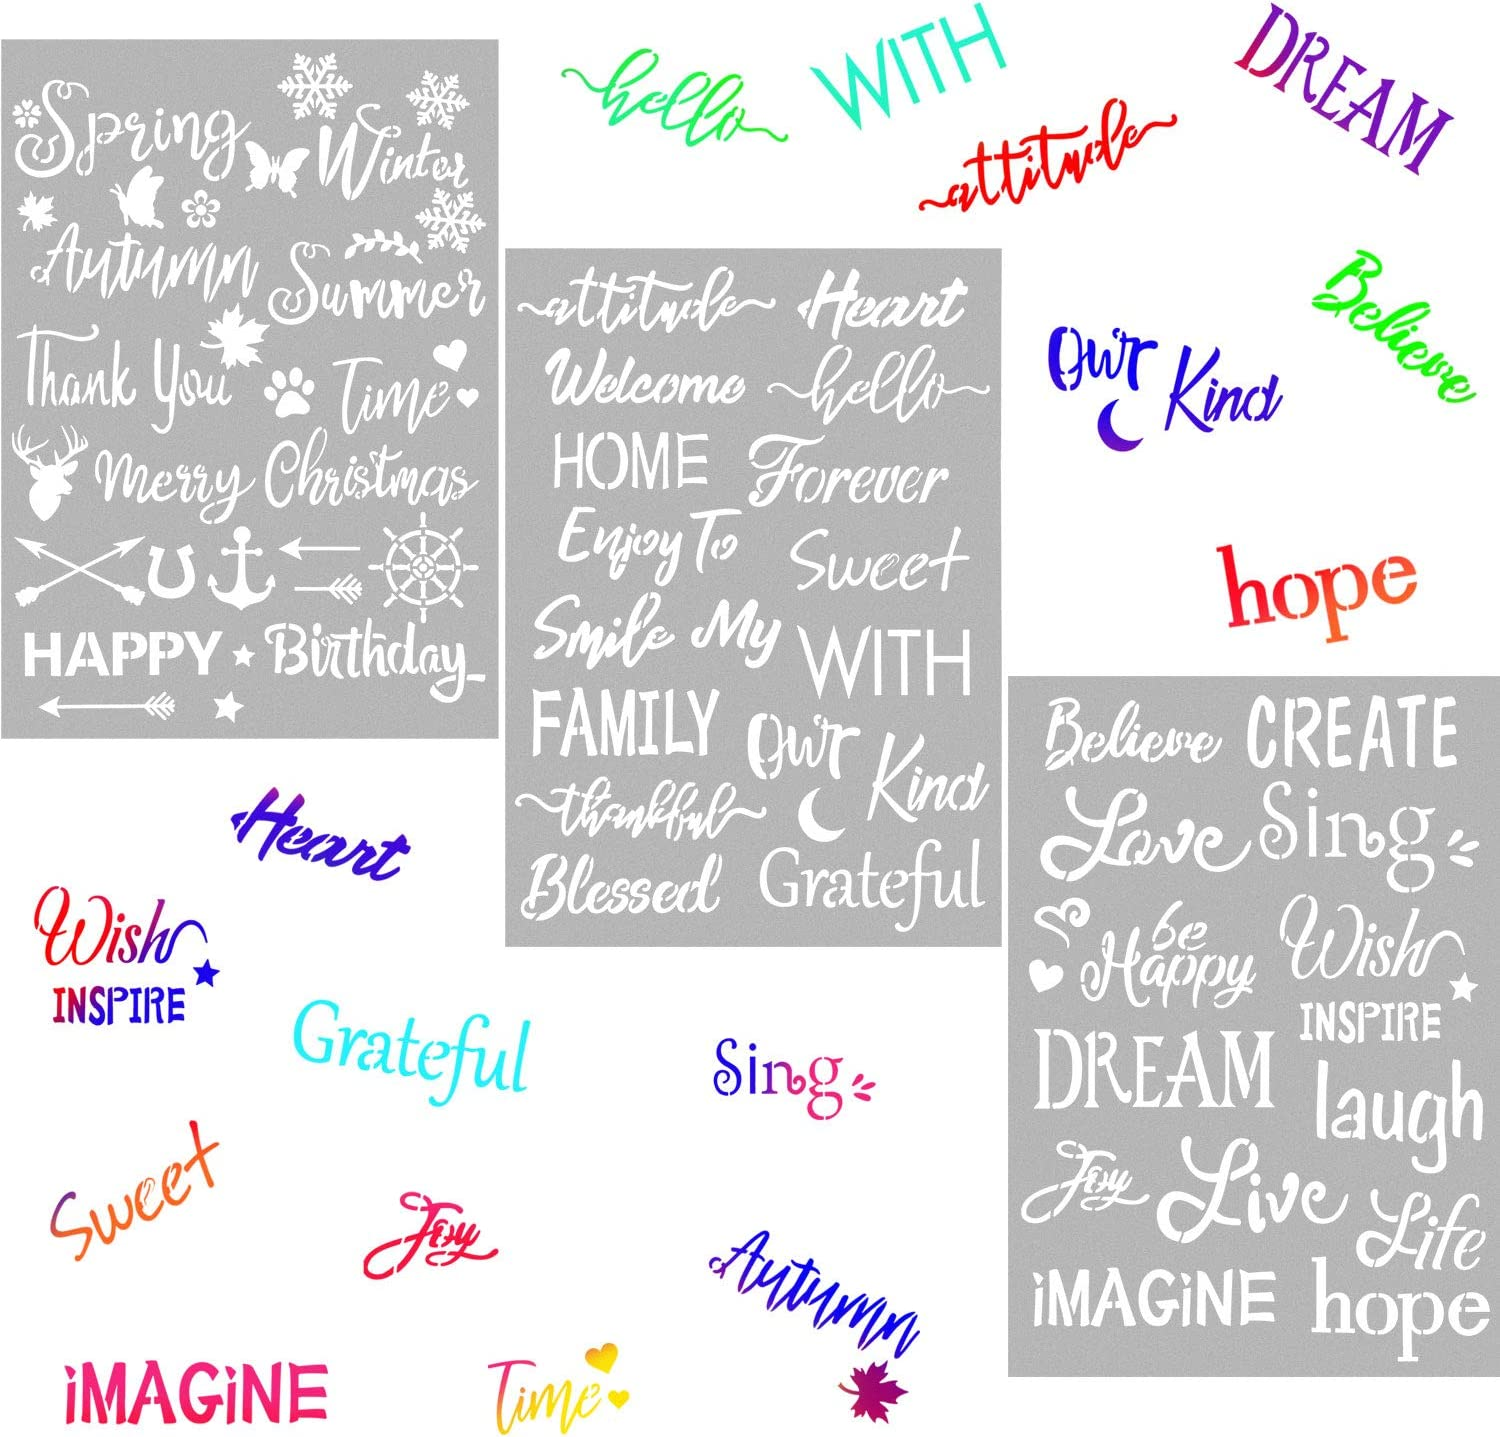 3 Pieces Plastic Painting Stencils Inspirational Word Stencils 8 x 11 Inch Reusable Stencils Template for Painting on Wood, Fabric, Paper, Wall DIY Drawing Craft